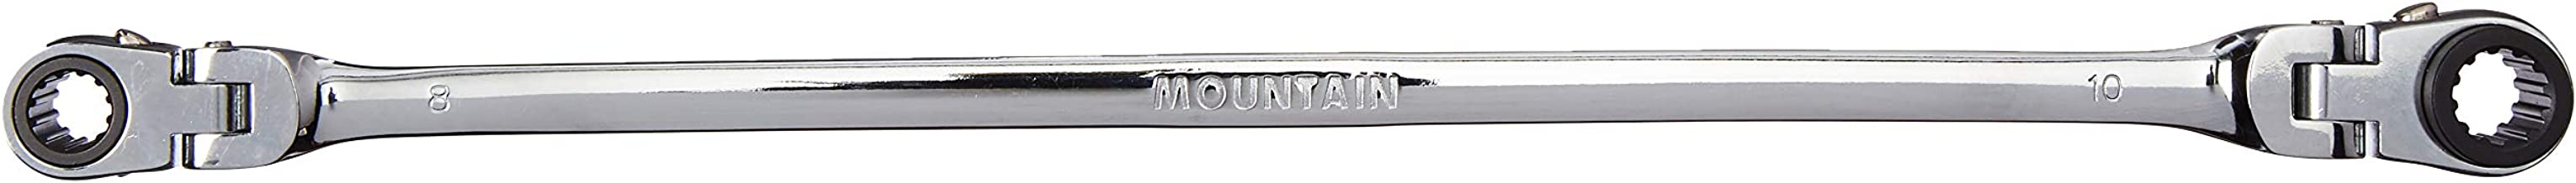 Mountain 8x10mm Double Box Universal Spline Reversible Ratcheting Wrench; 90 Tooth Design, Long, Flexible, Reversible; MTNRM810